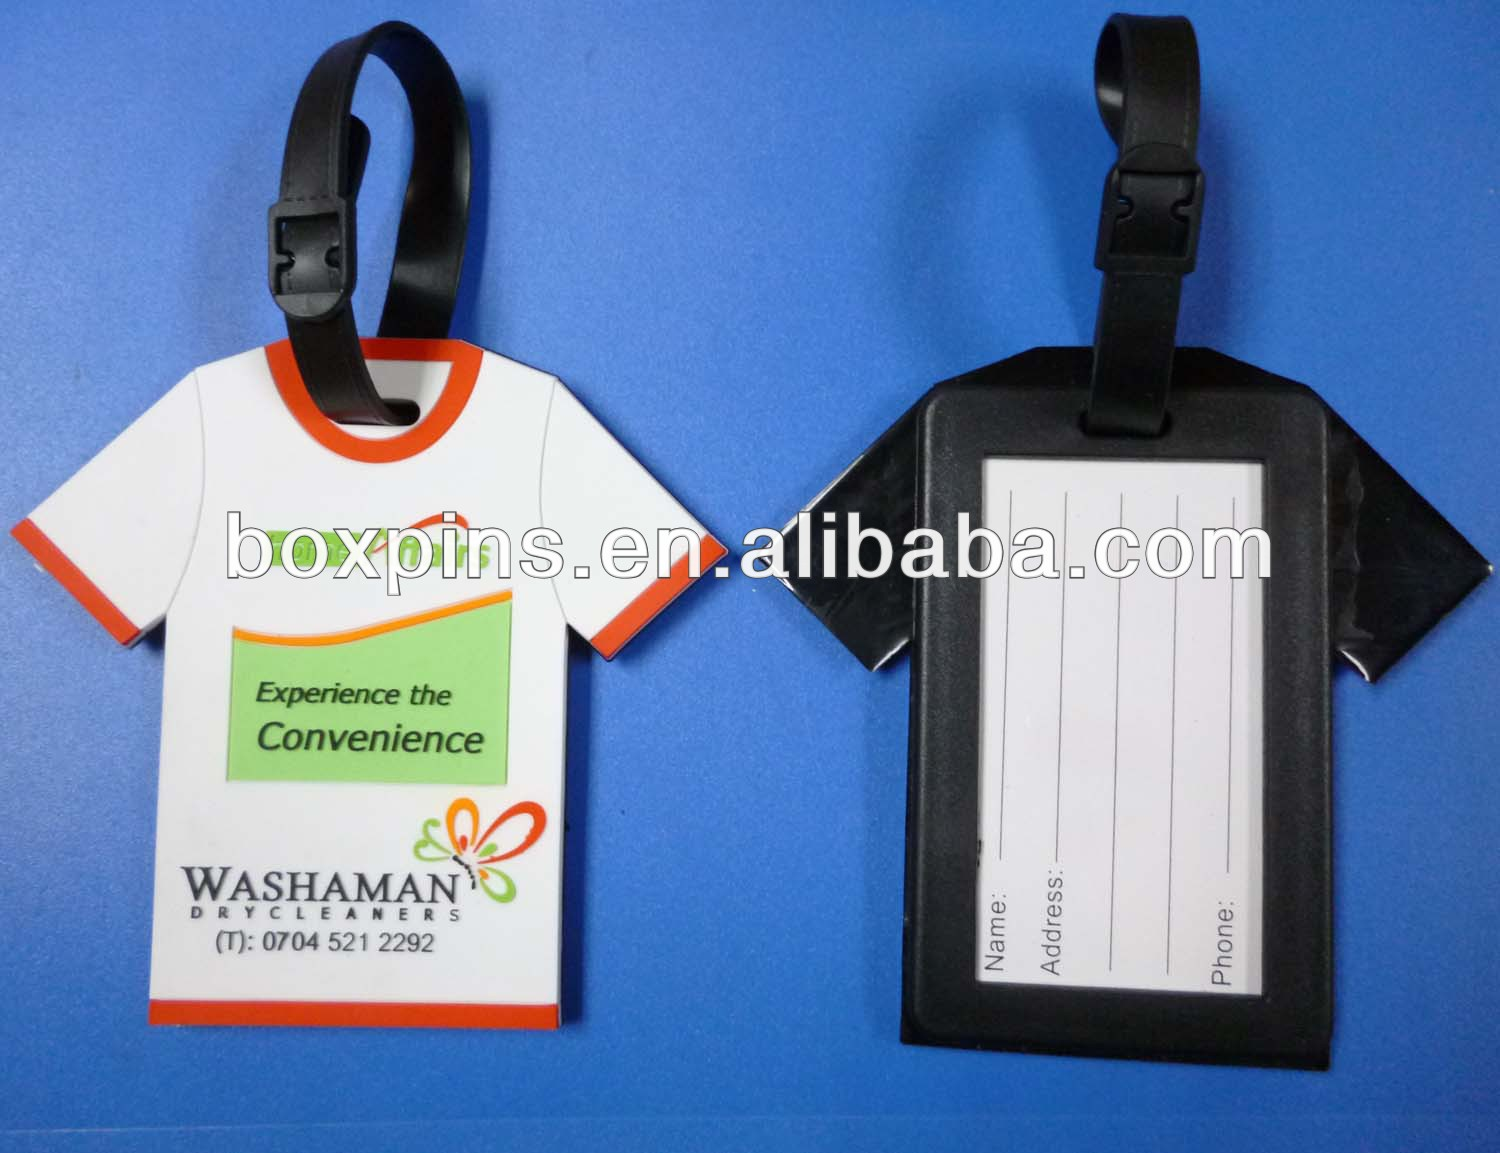 Jersey shaped with custom logo rubber luggage tags T shirt shaped bag tags